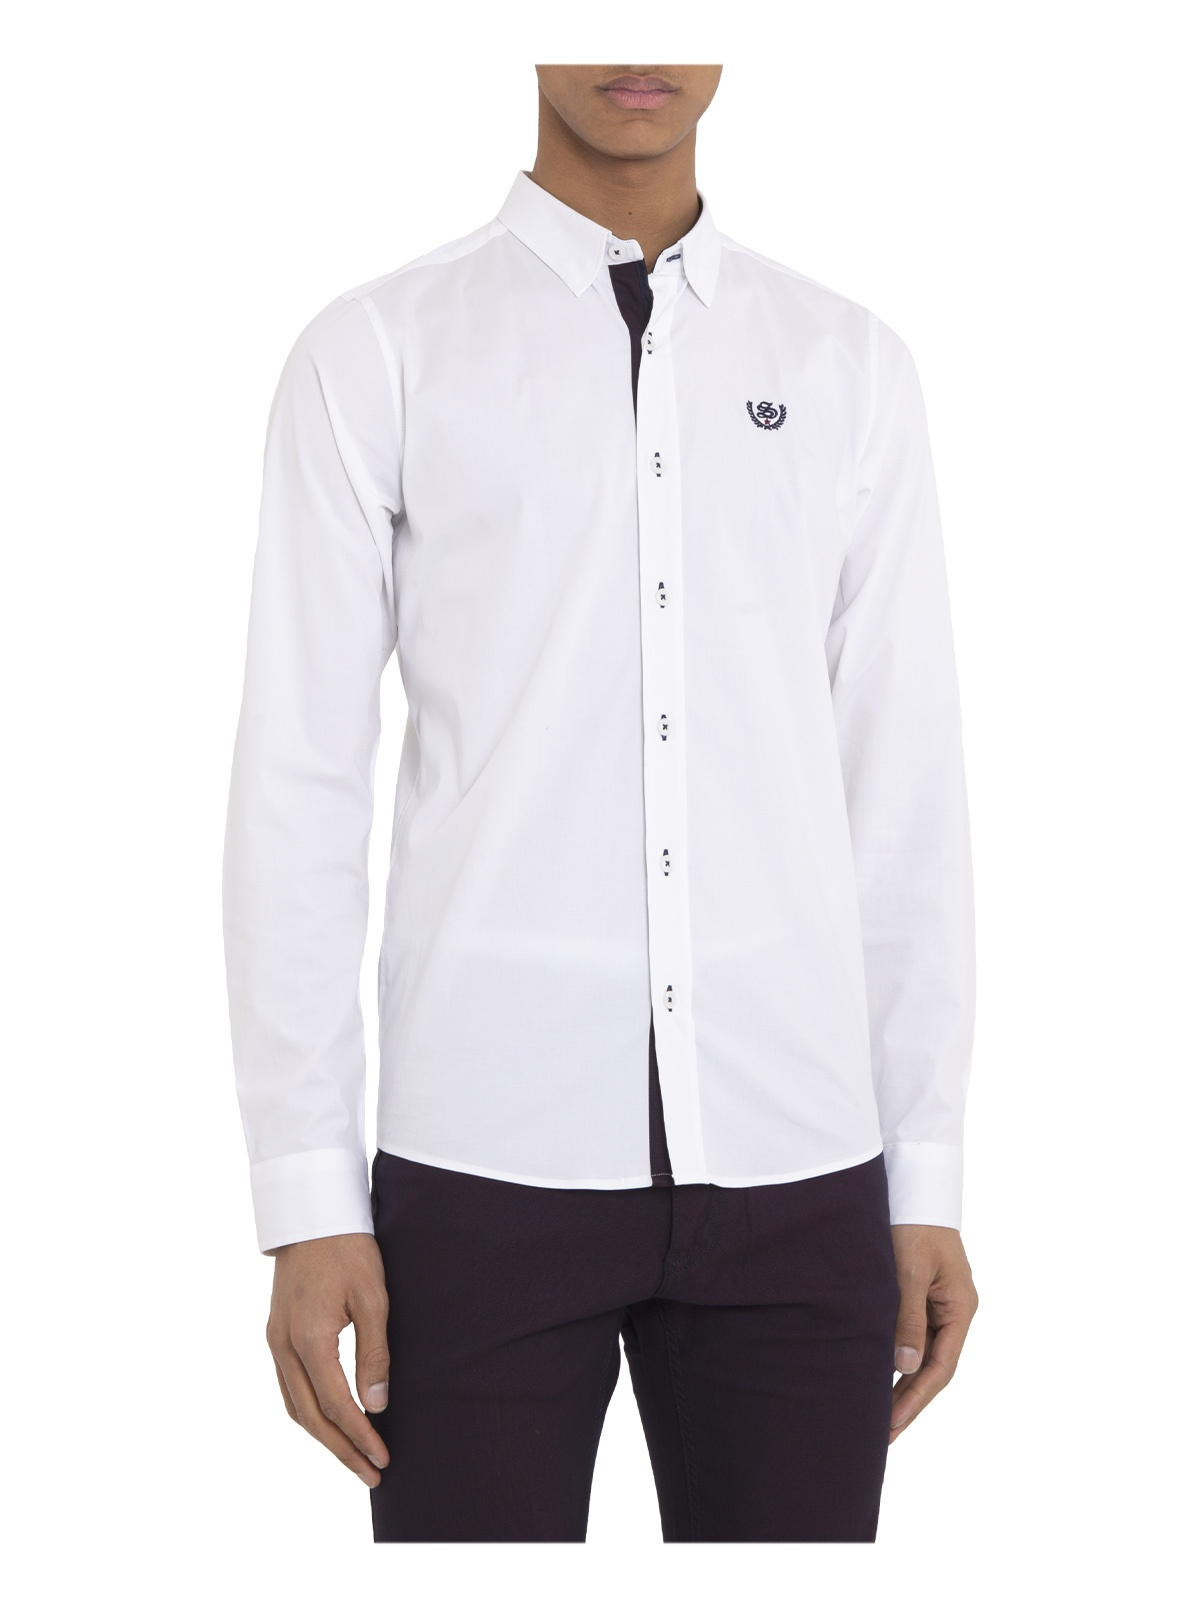 CAMISA SMK WHITE FASHION